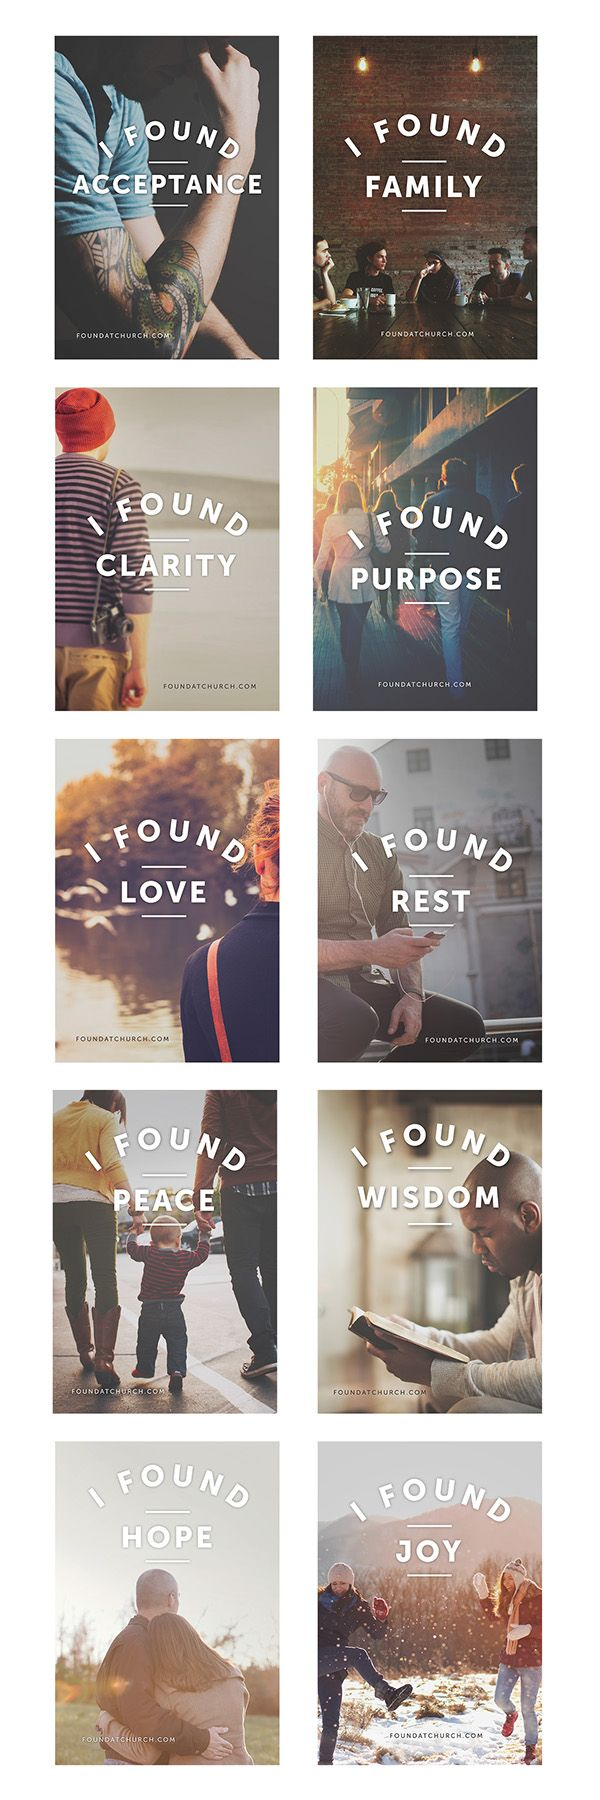 External marketing campaign using a range of 10 ads focused on public transportation. Using the #foundatchurch to point people to a website, foundatchurch.com, with content generated by attenders social media engagement with #foundatchurch.